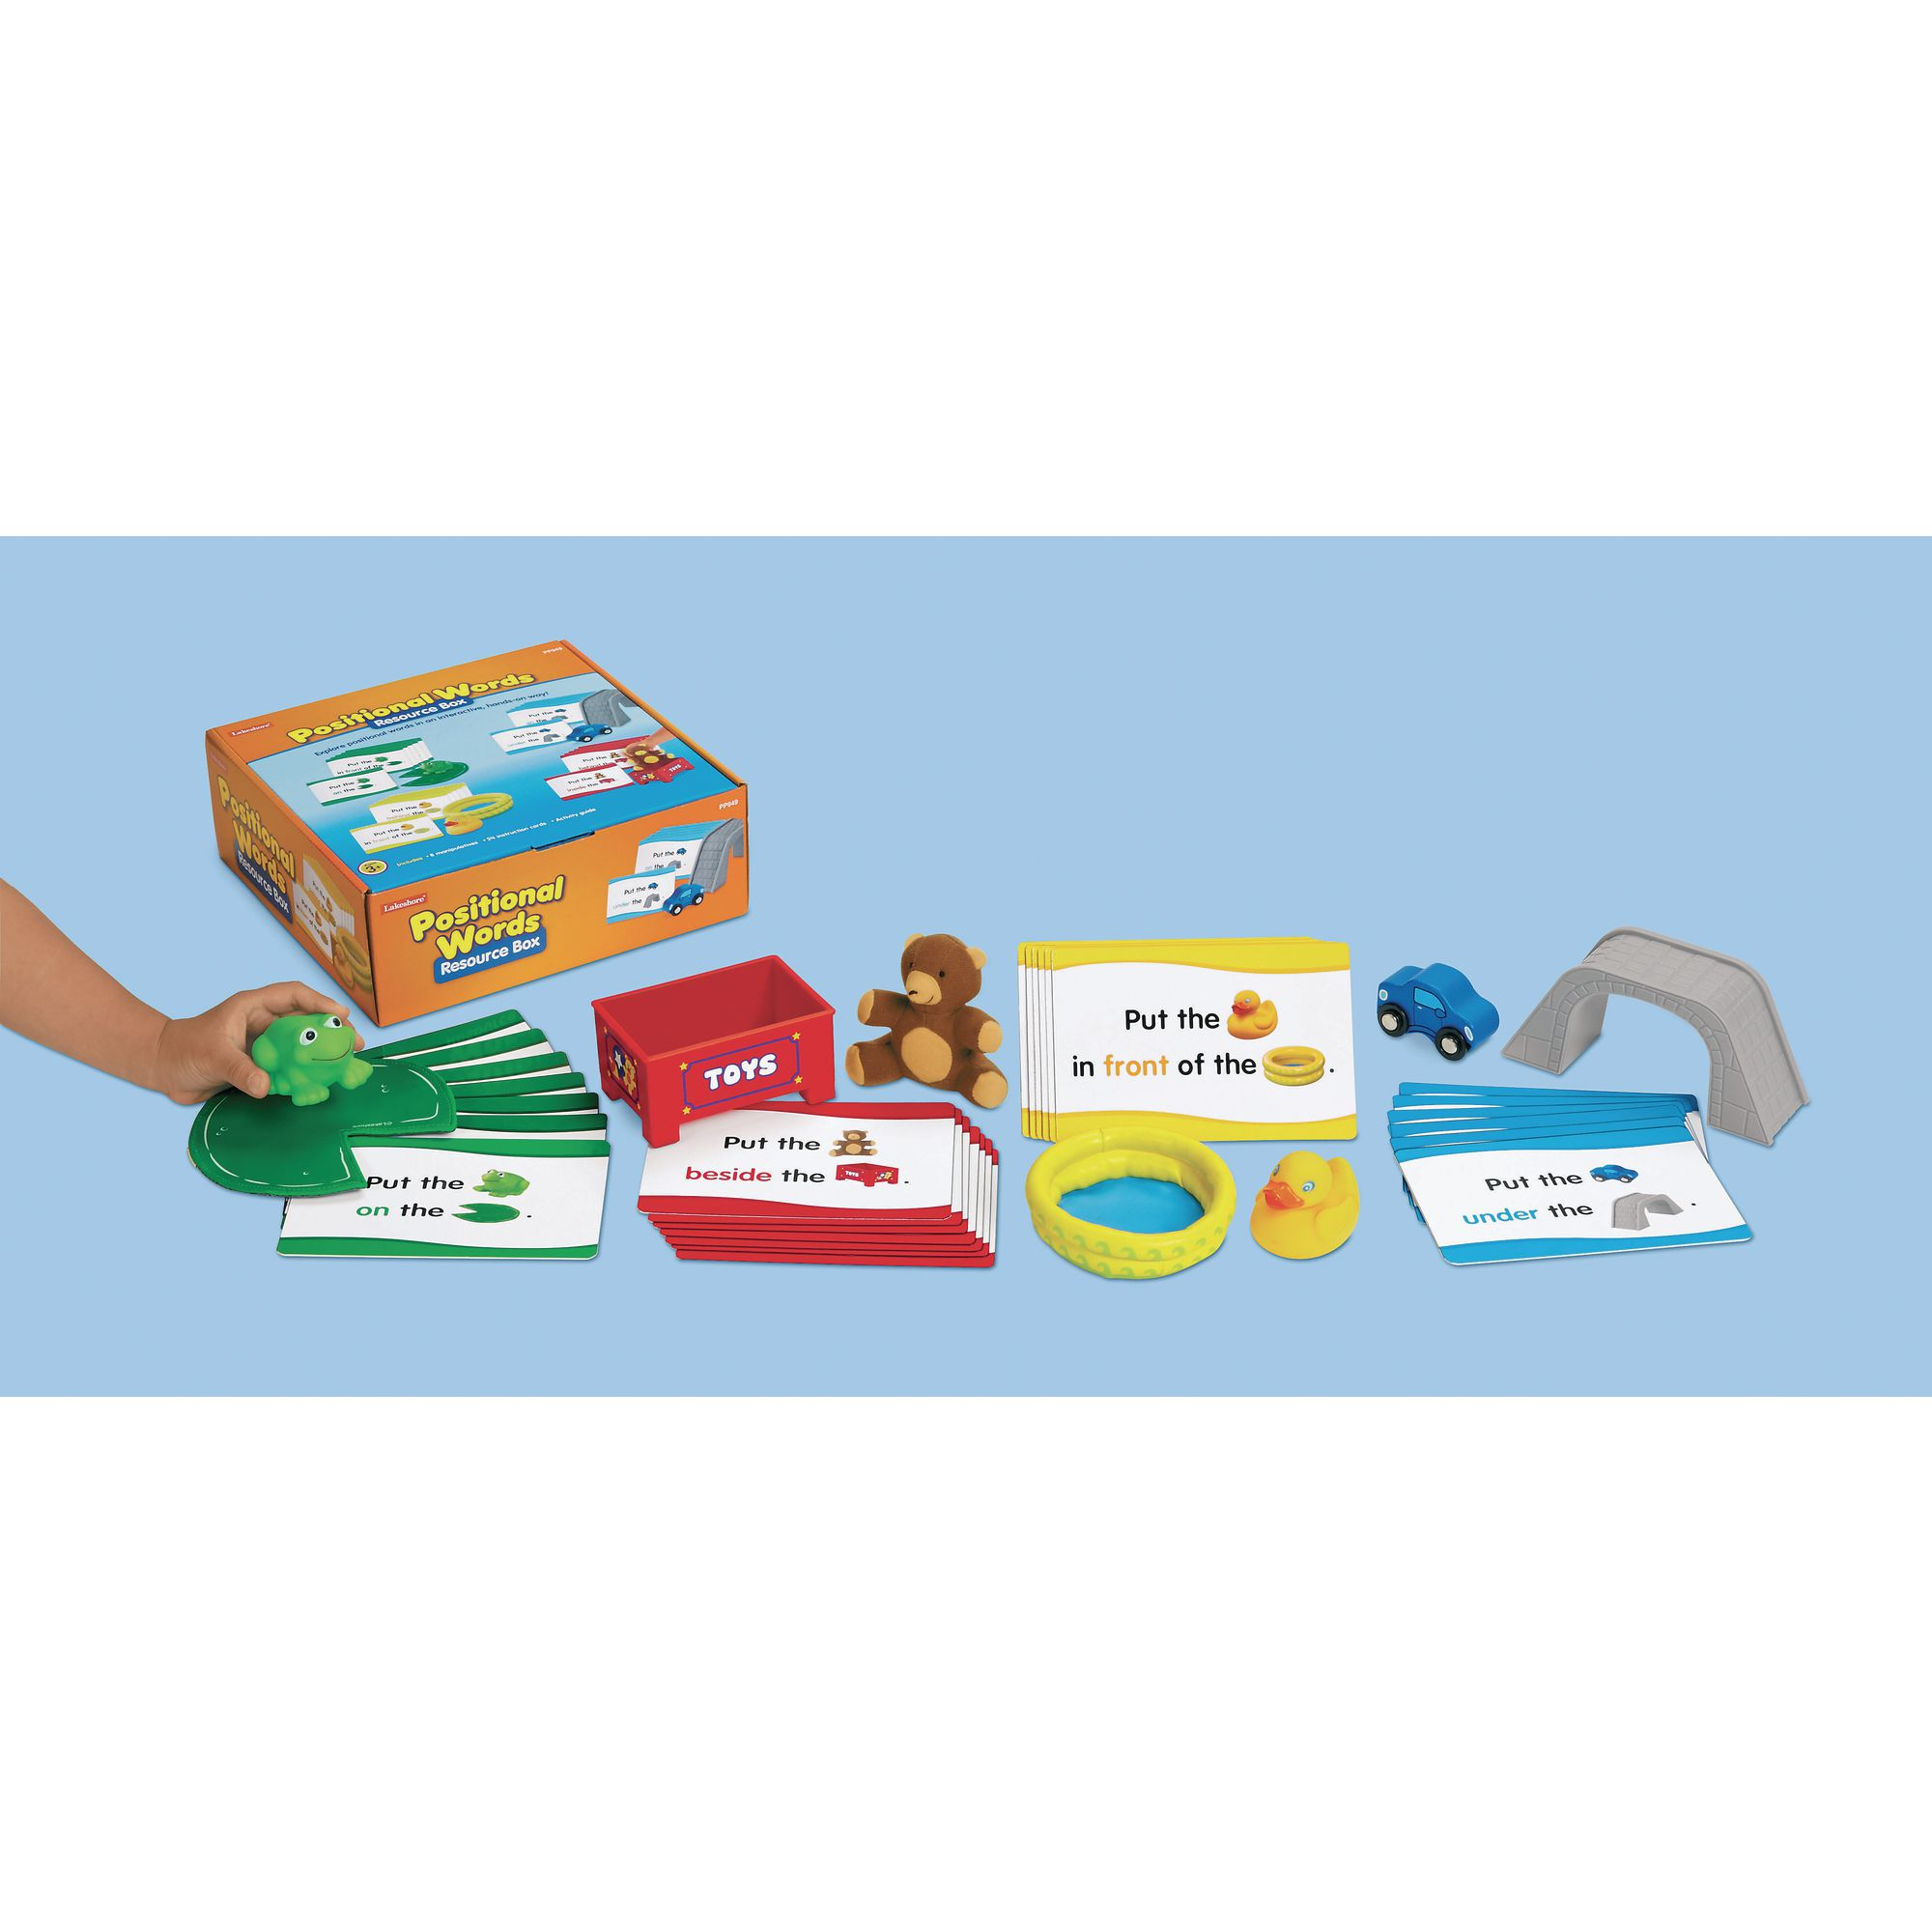 Positional Language Word Cards - australia, word cards, words